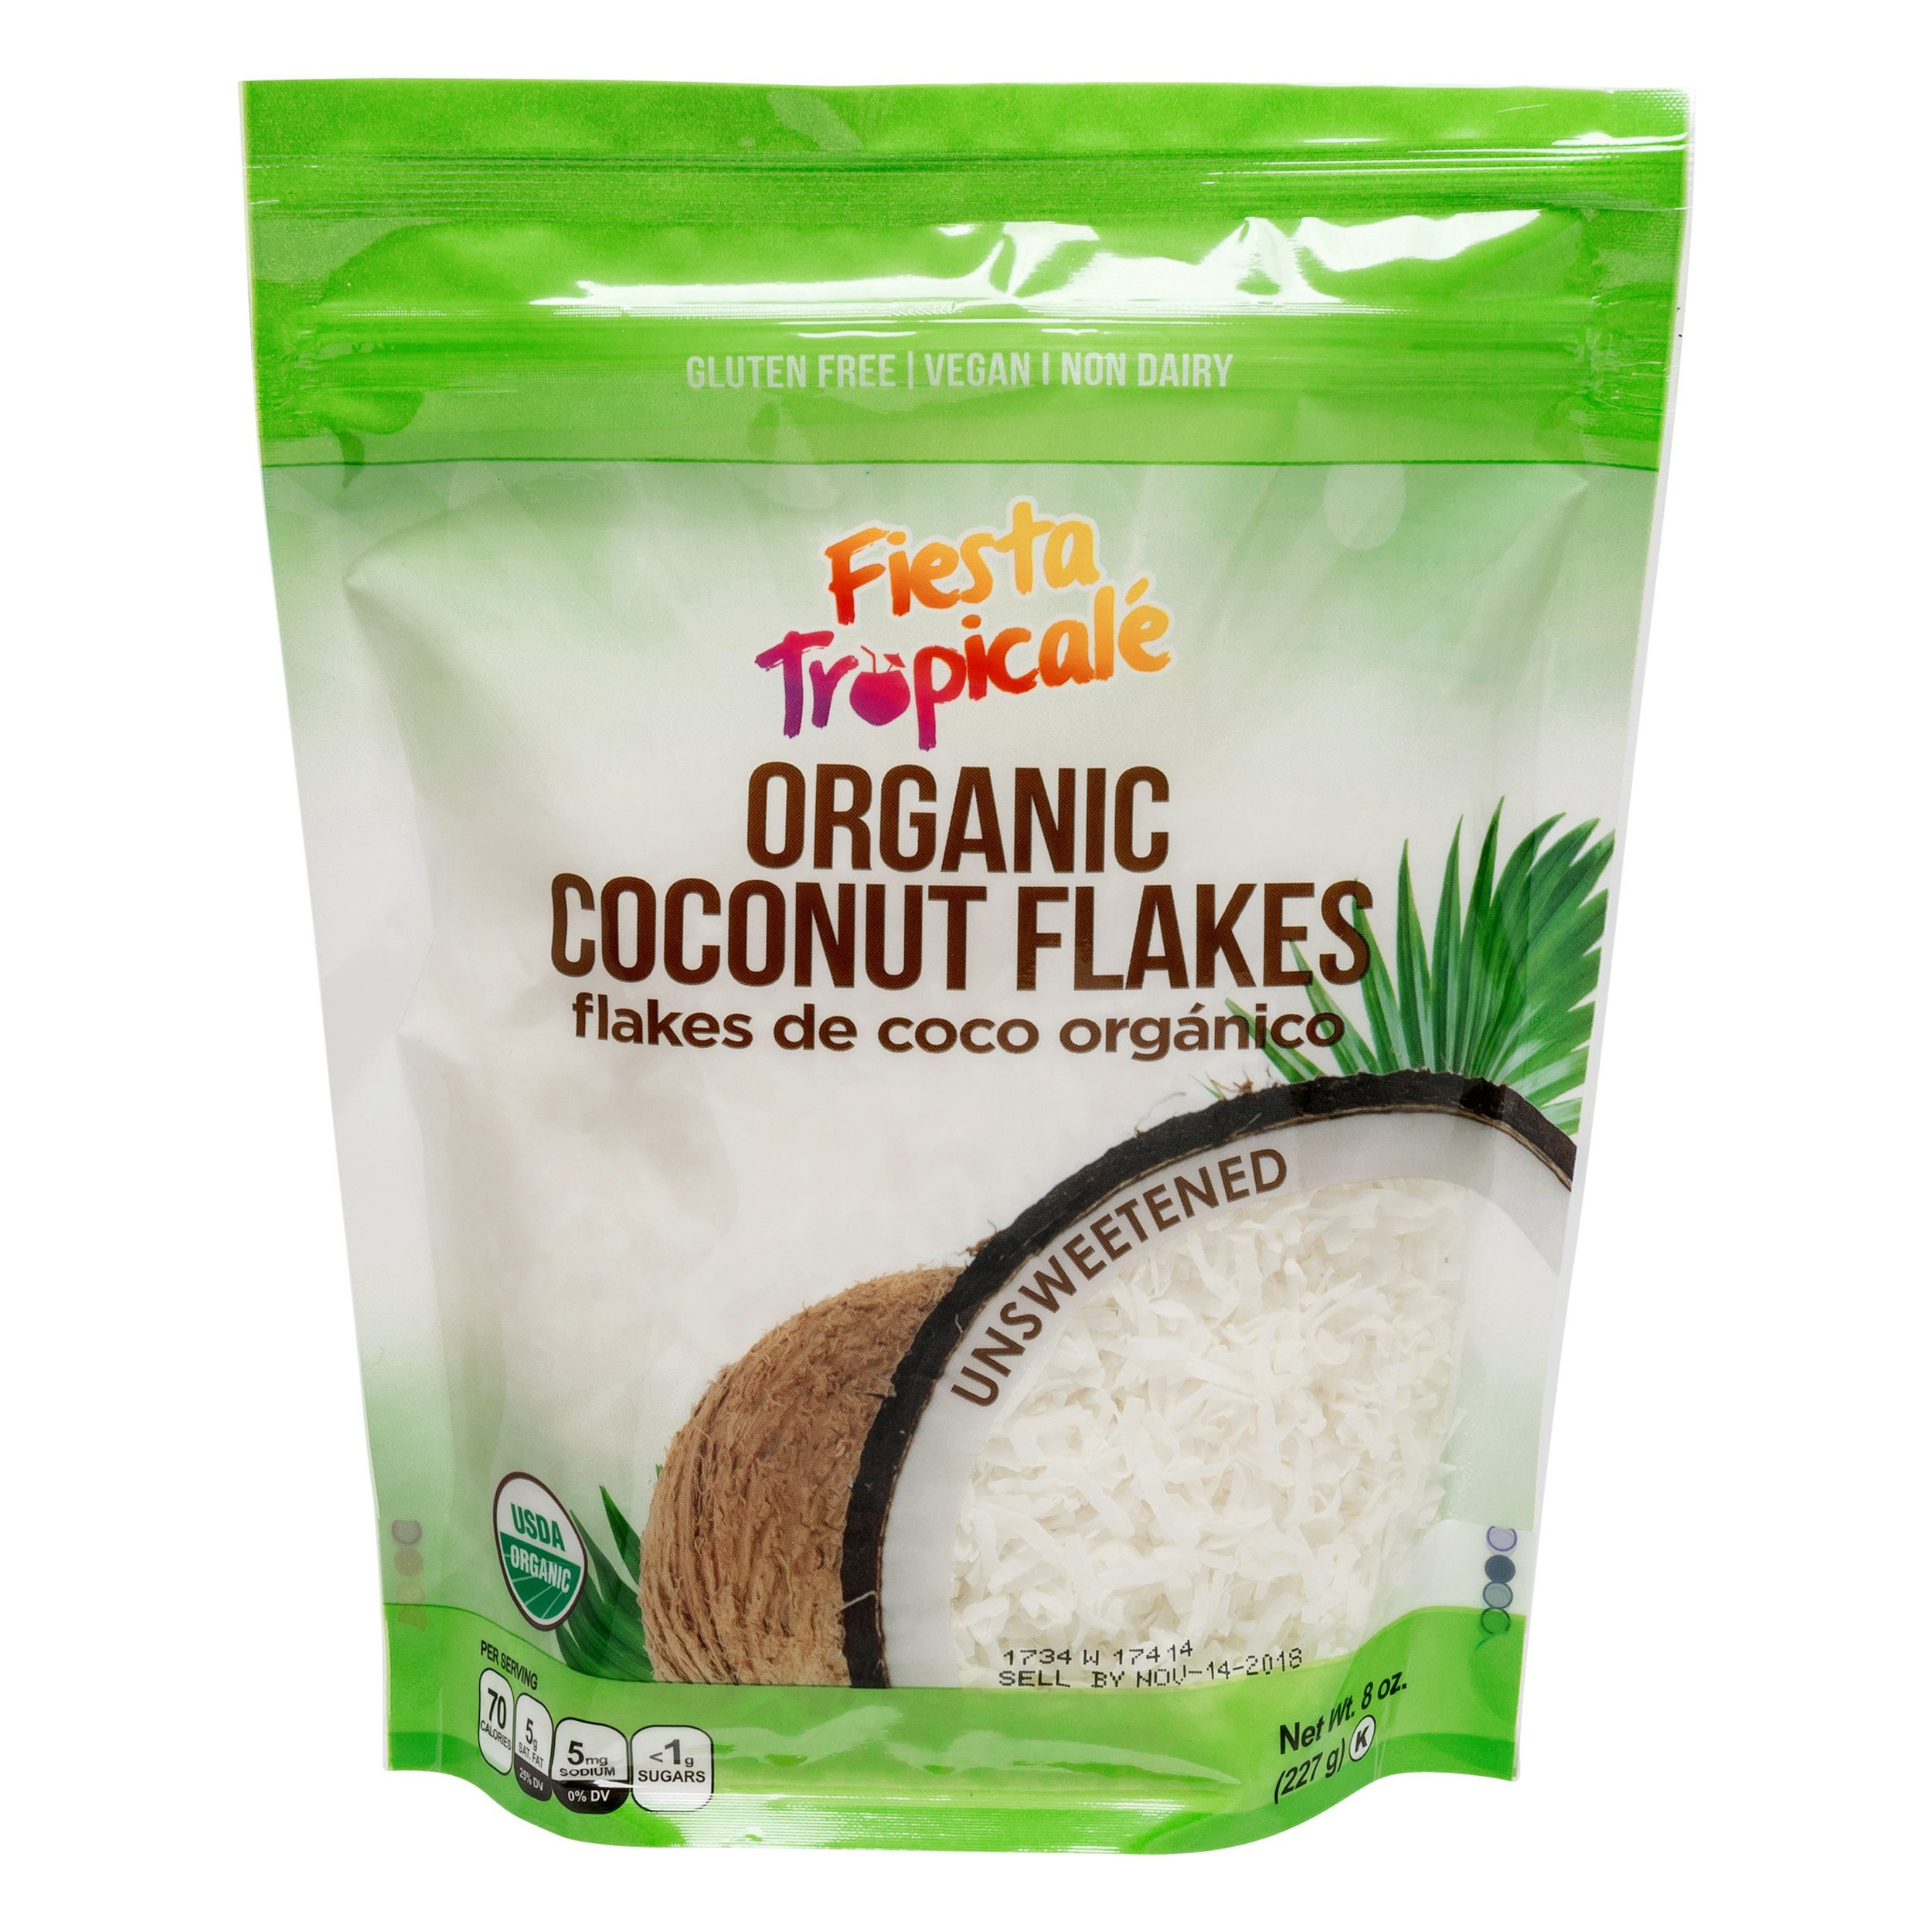 Fiesta Tropicalé Organic Coconut Flakes, Unsweetened, 8 oz. (Pack of 3)